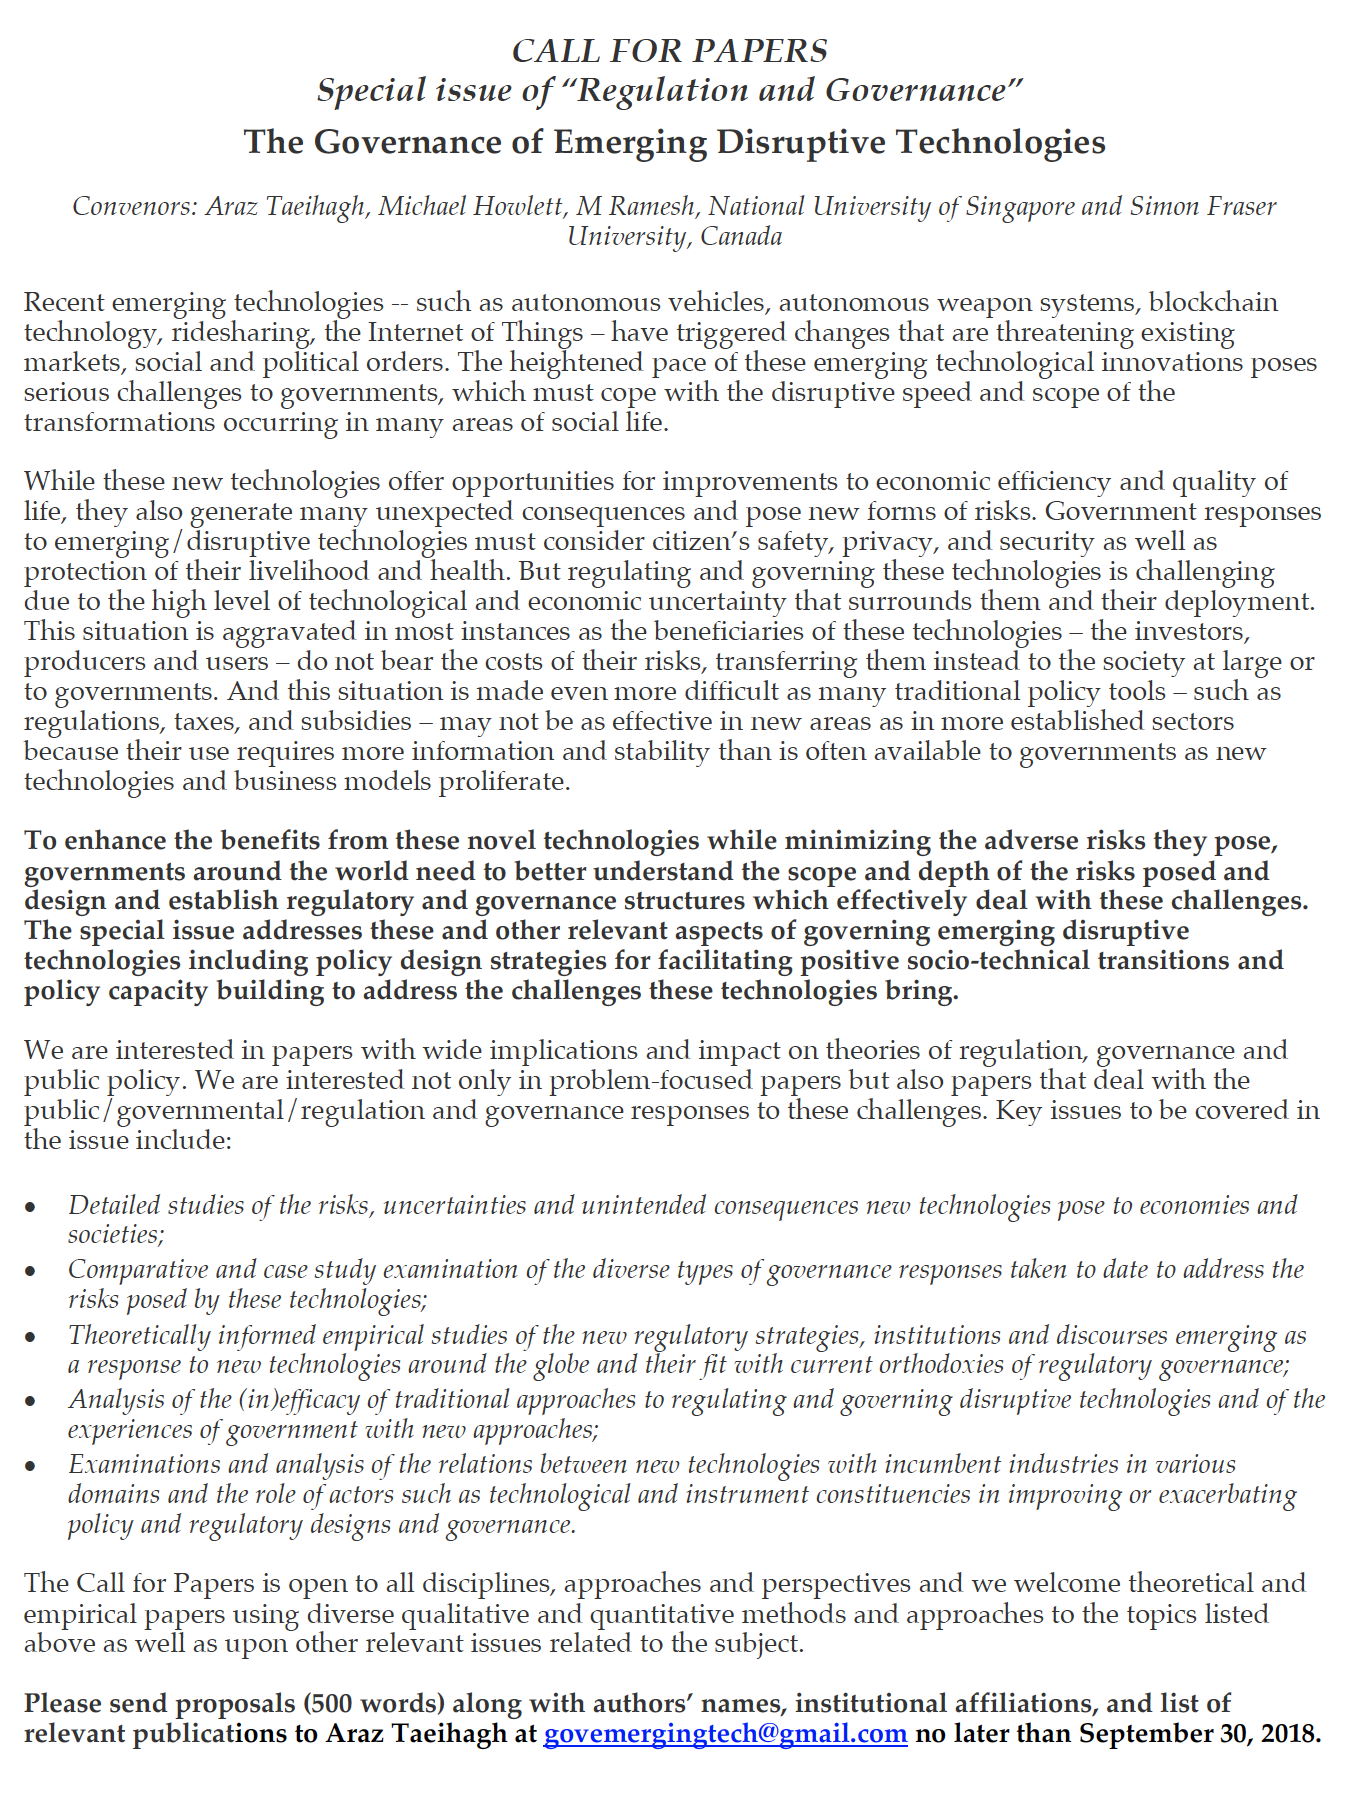 call for papers regulation and governance The Governance of Emerging Disruptive Technologies.png